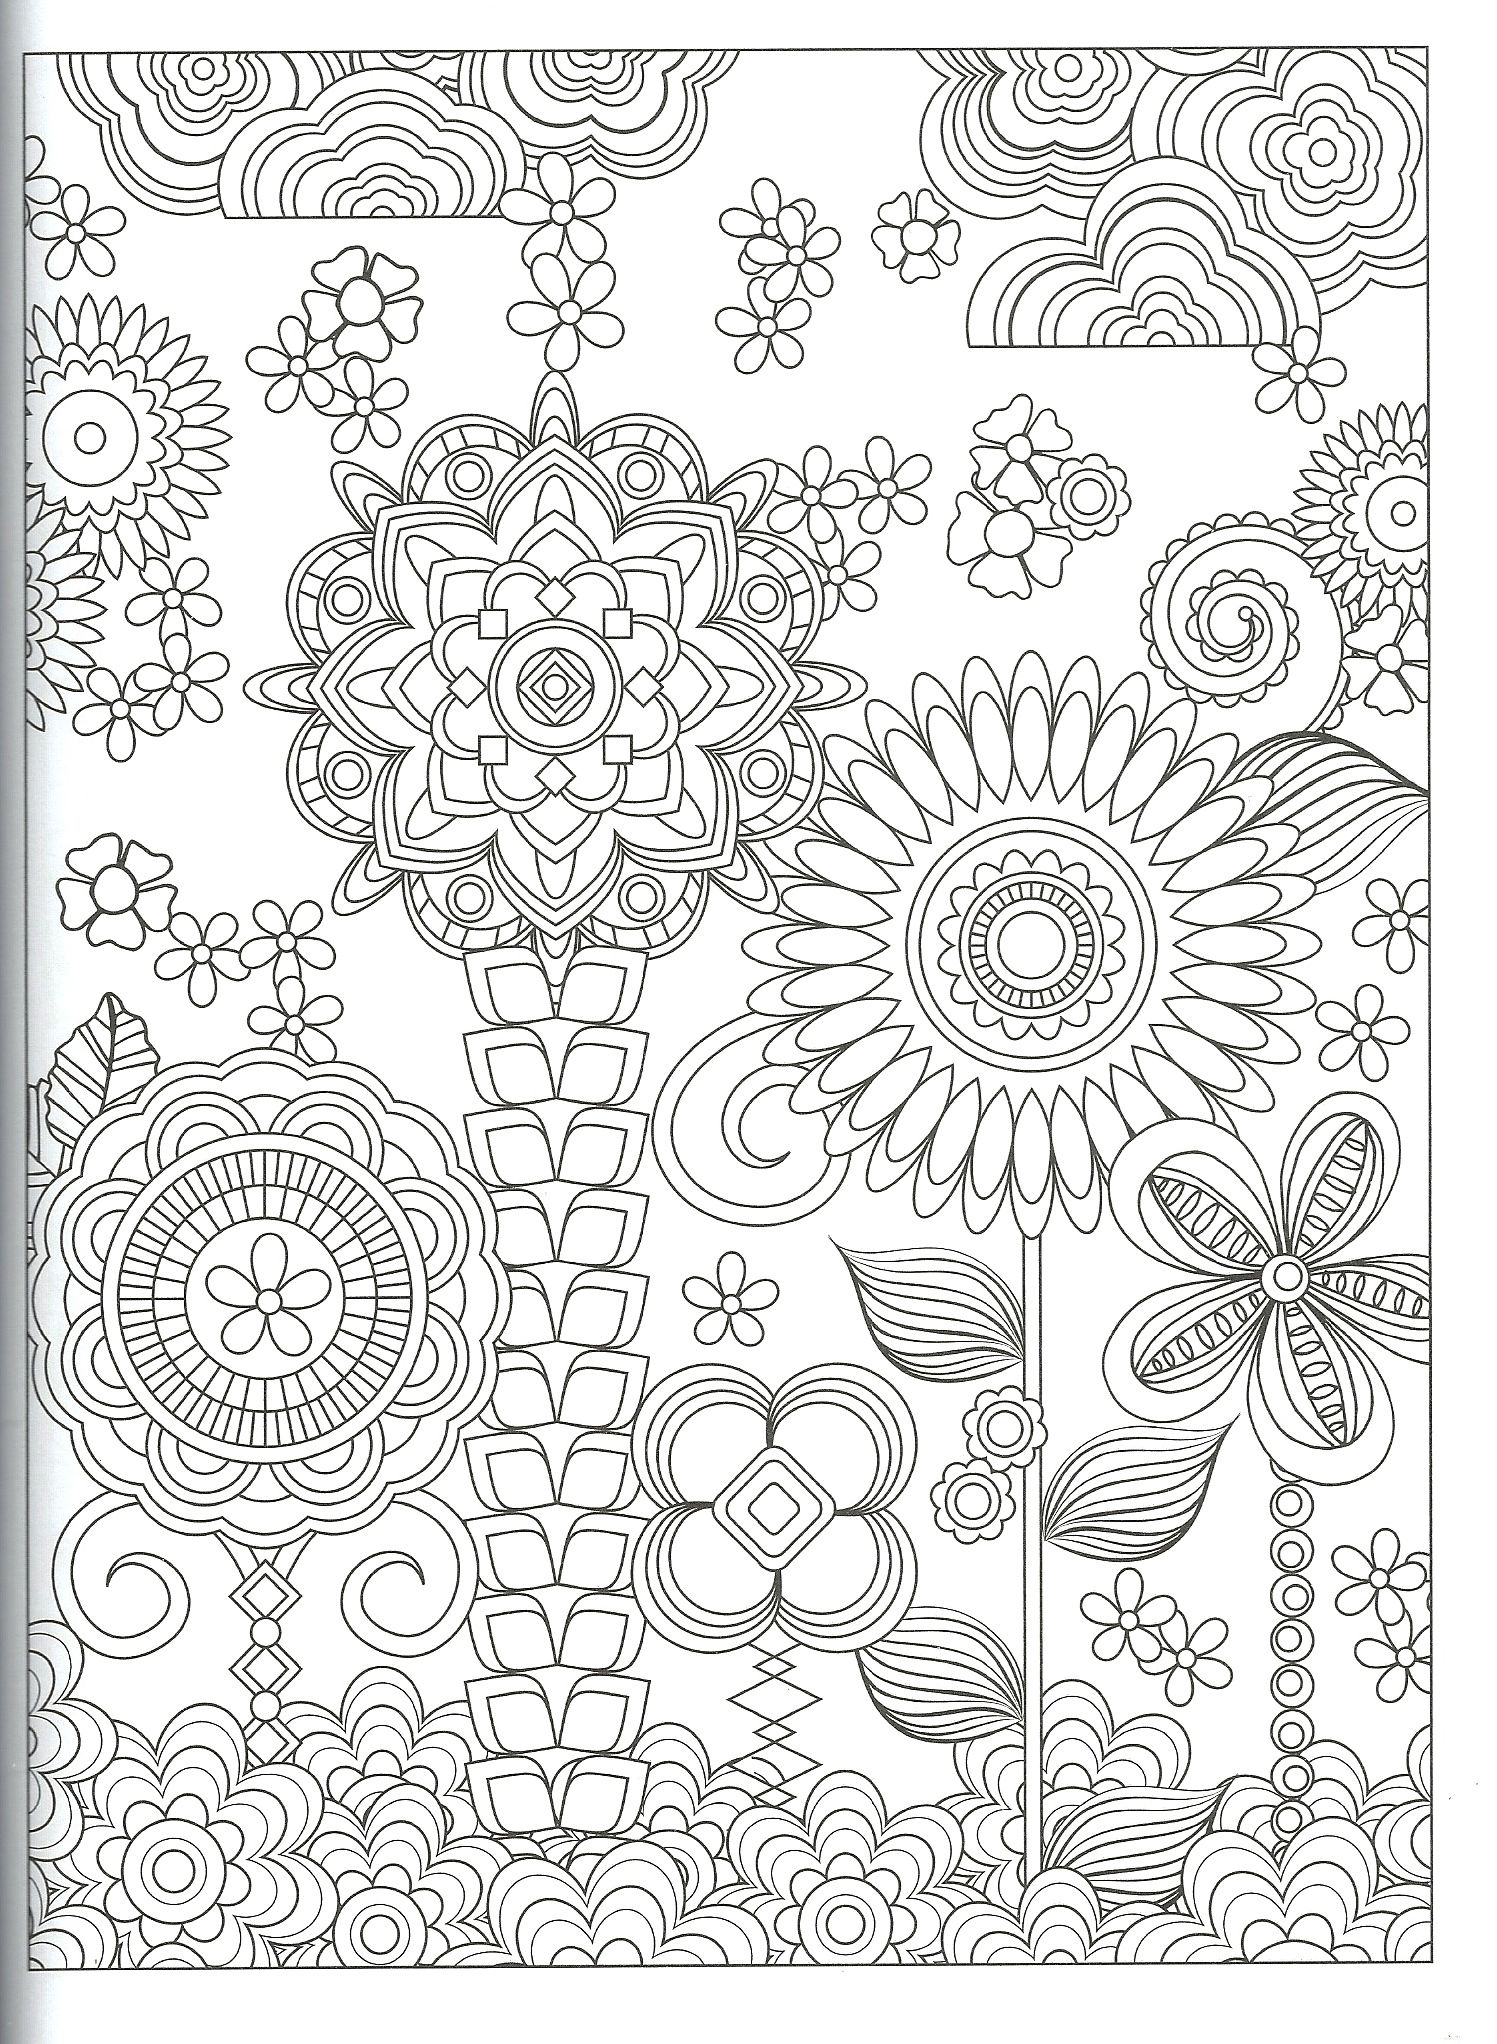 Pin by Courtney Wood on coloring | Pinterest | Adult coloring ...